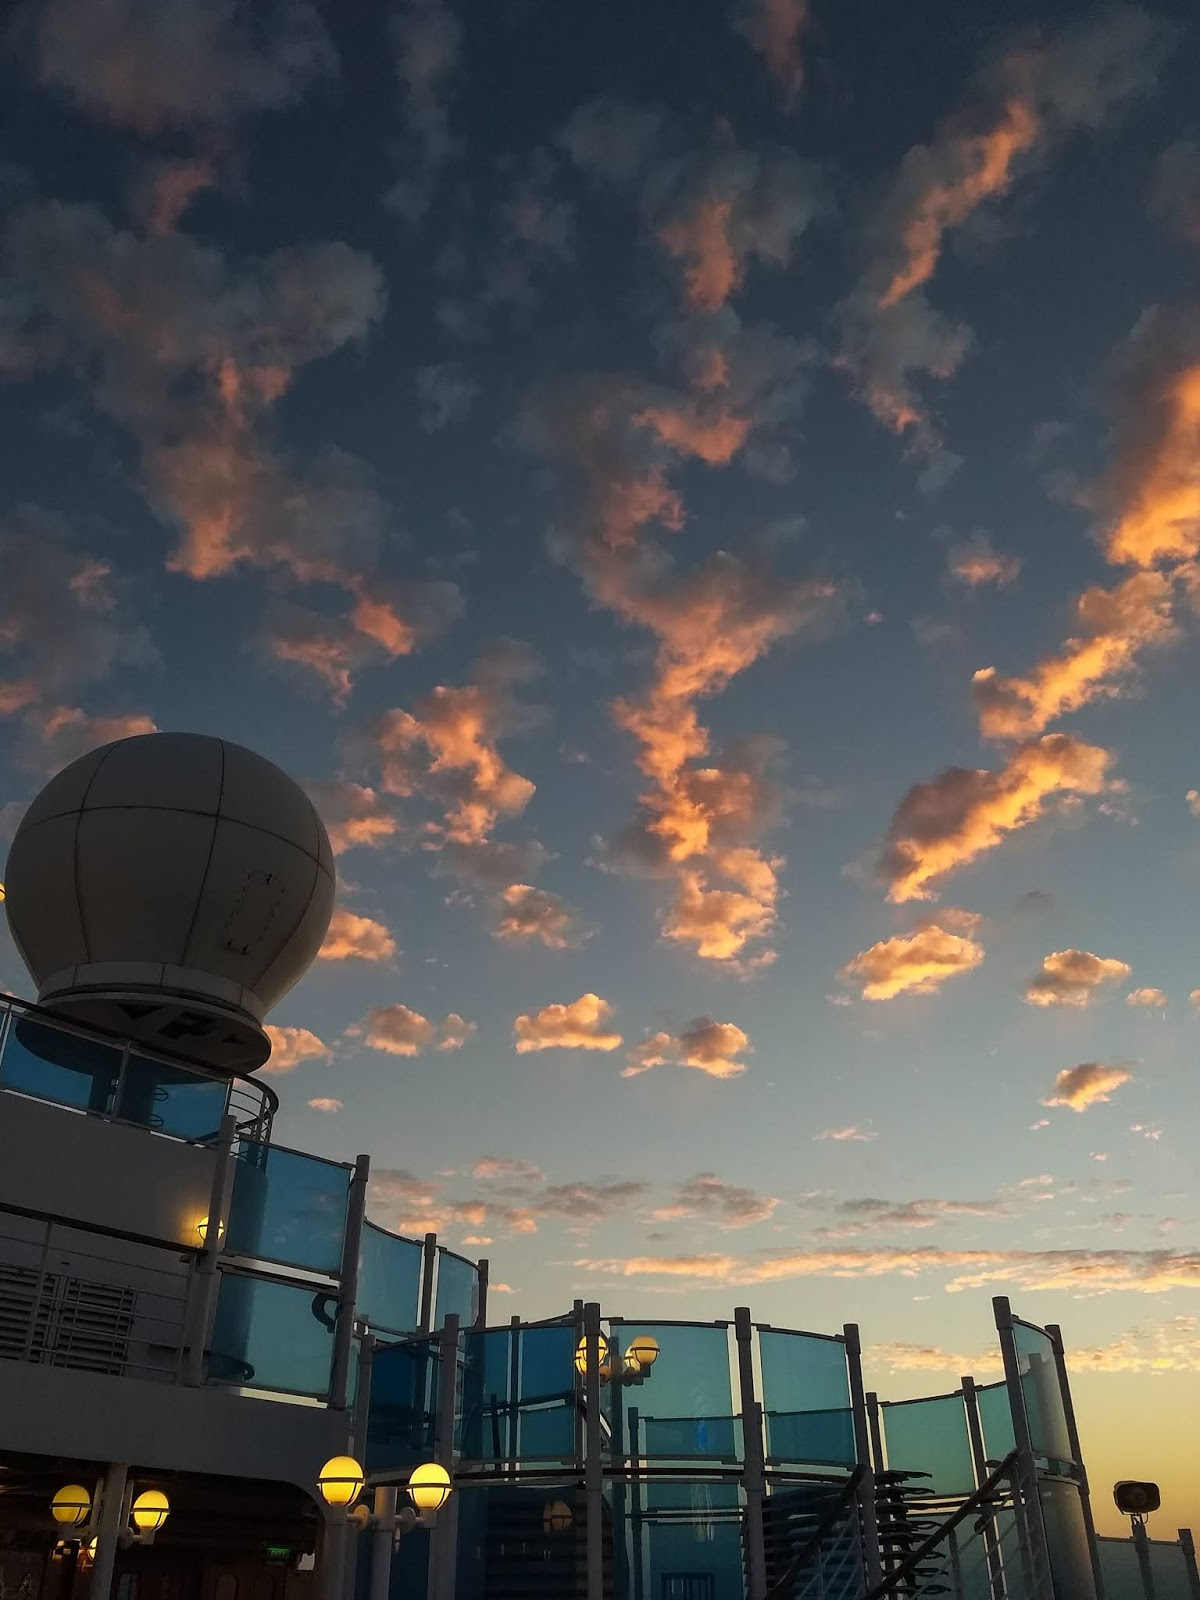 A view of sunset clouds above the Sapphire Princess cruise ship.